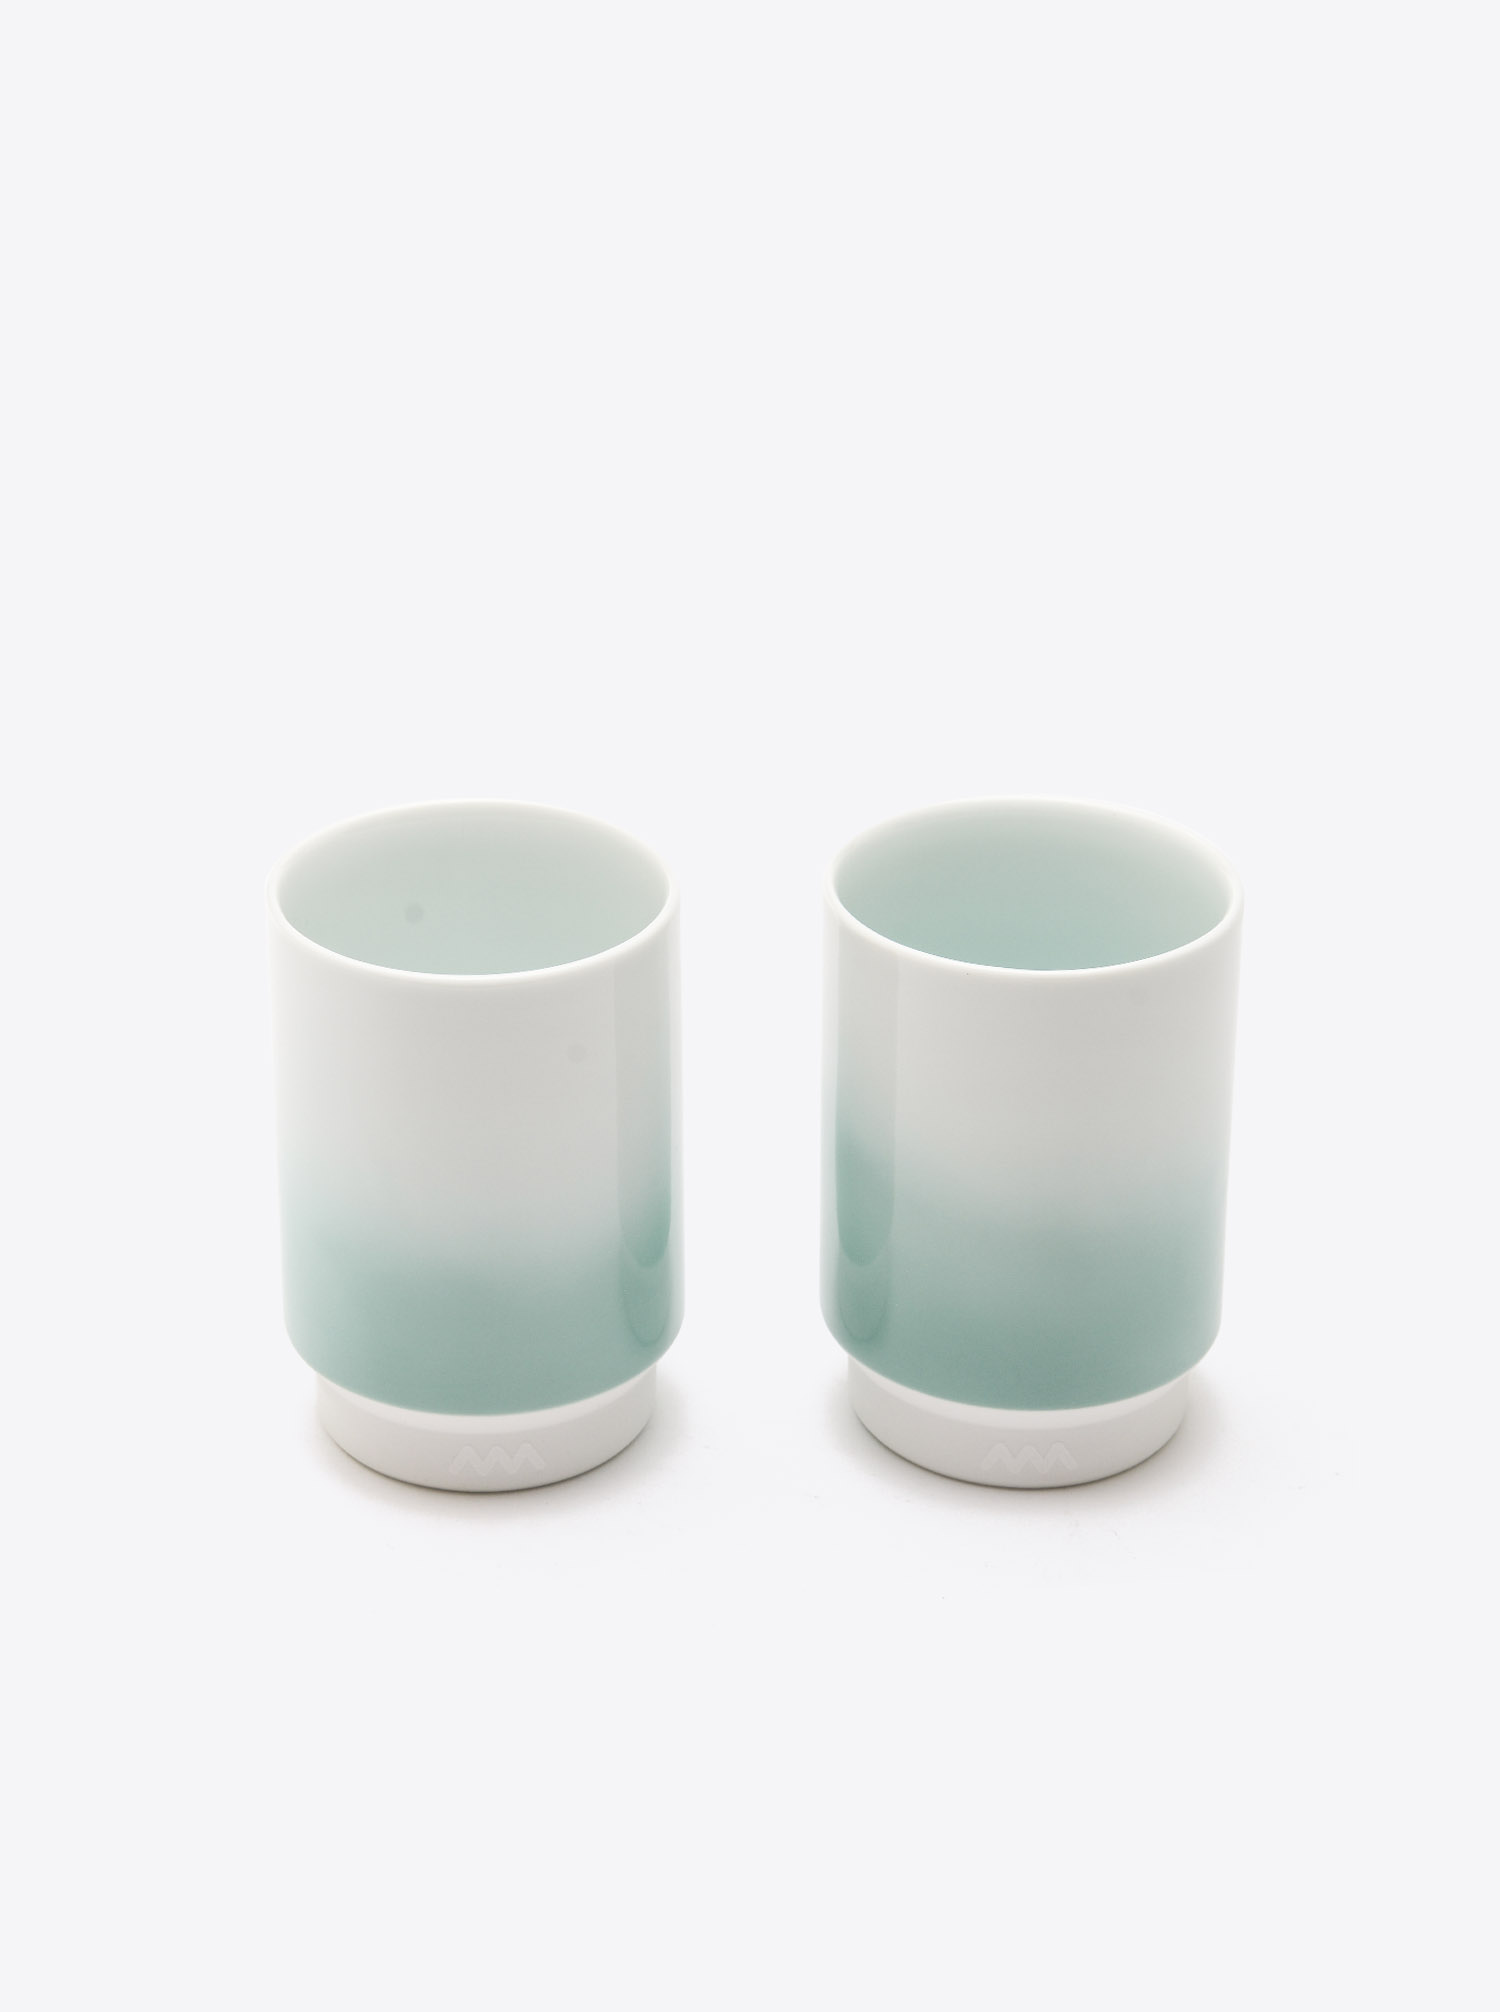 Teacup Hasami M mint